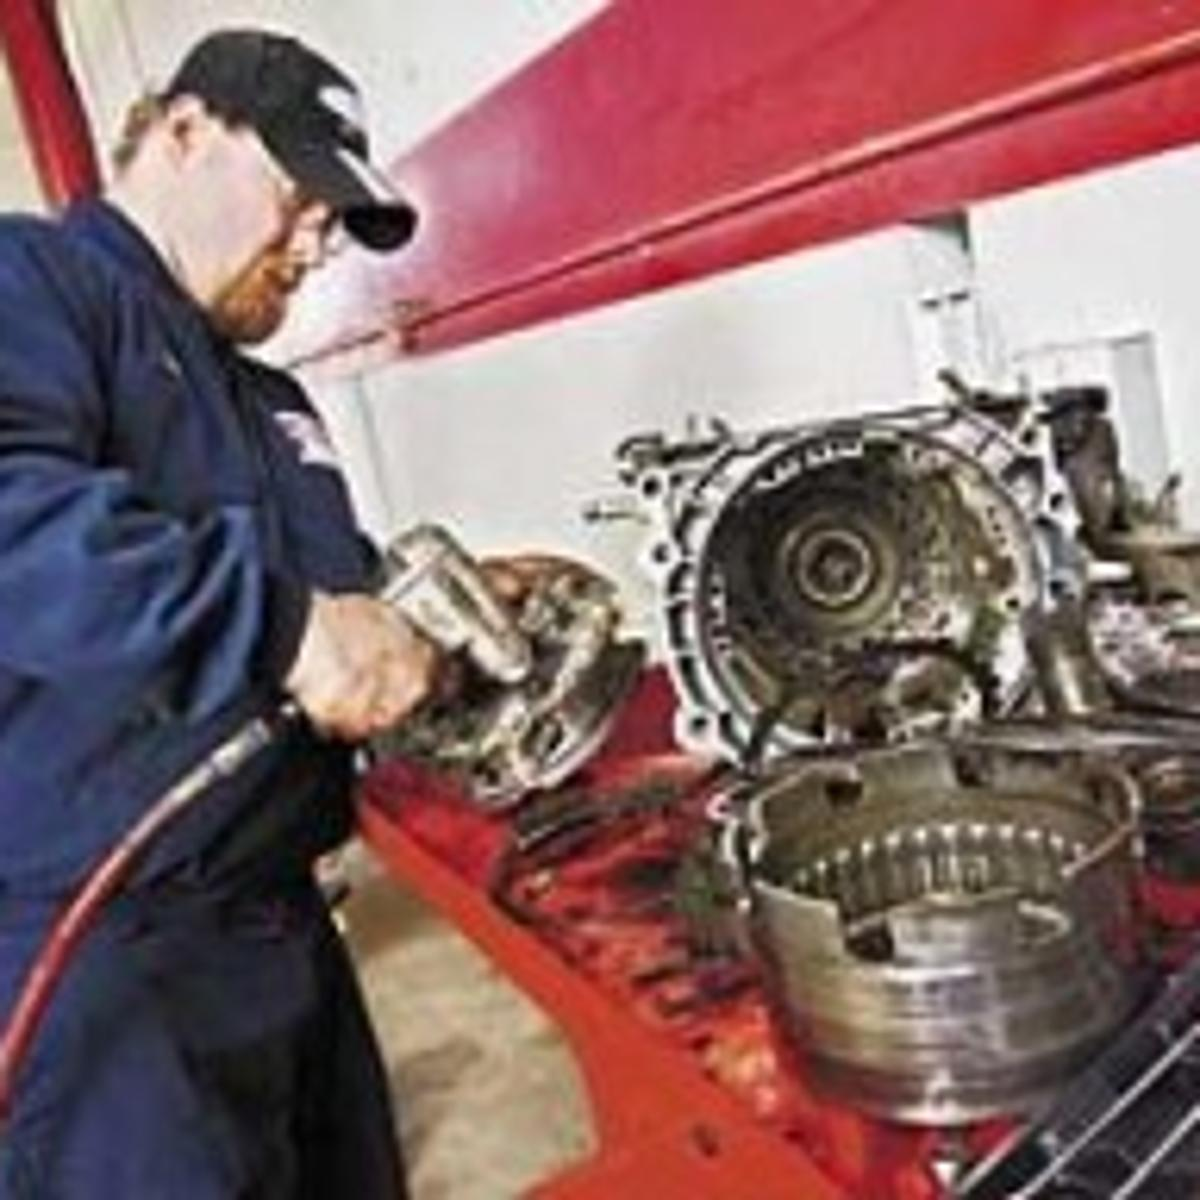 Auto-repair shop owner reels over tool theft | News | tdn com